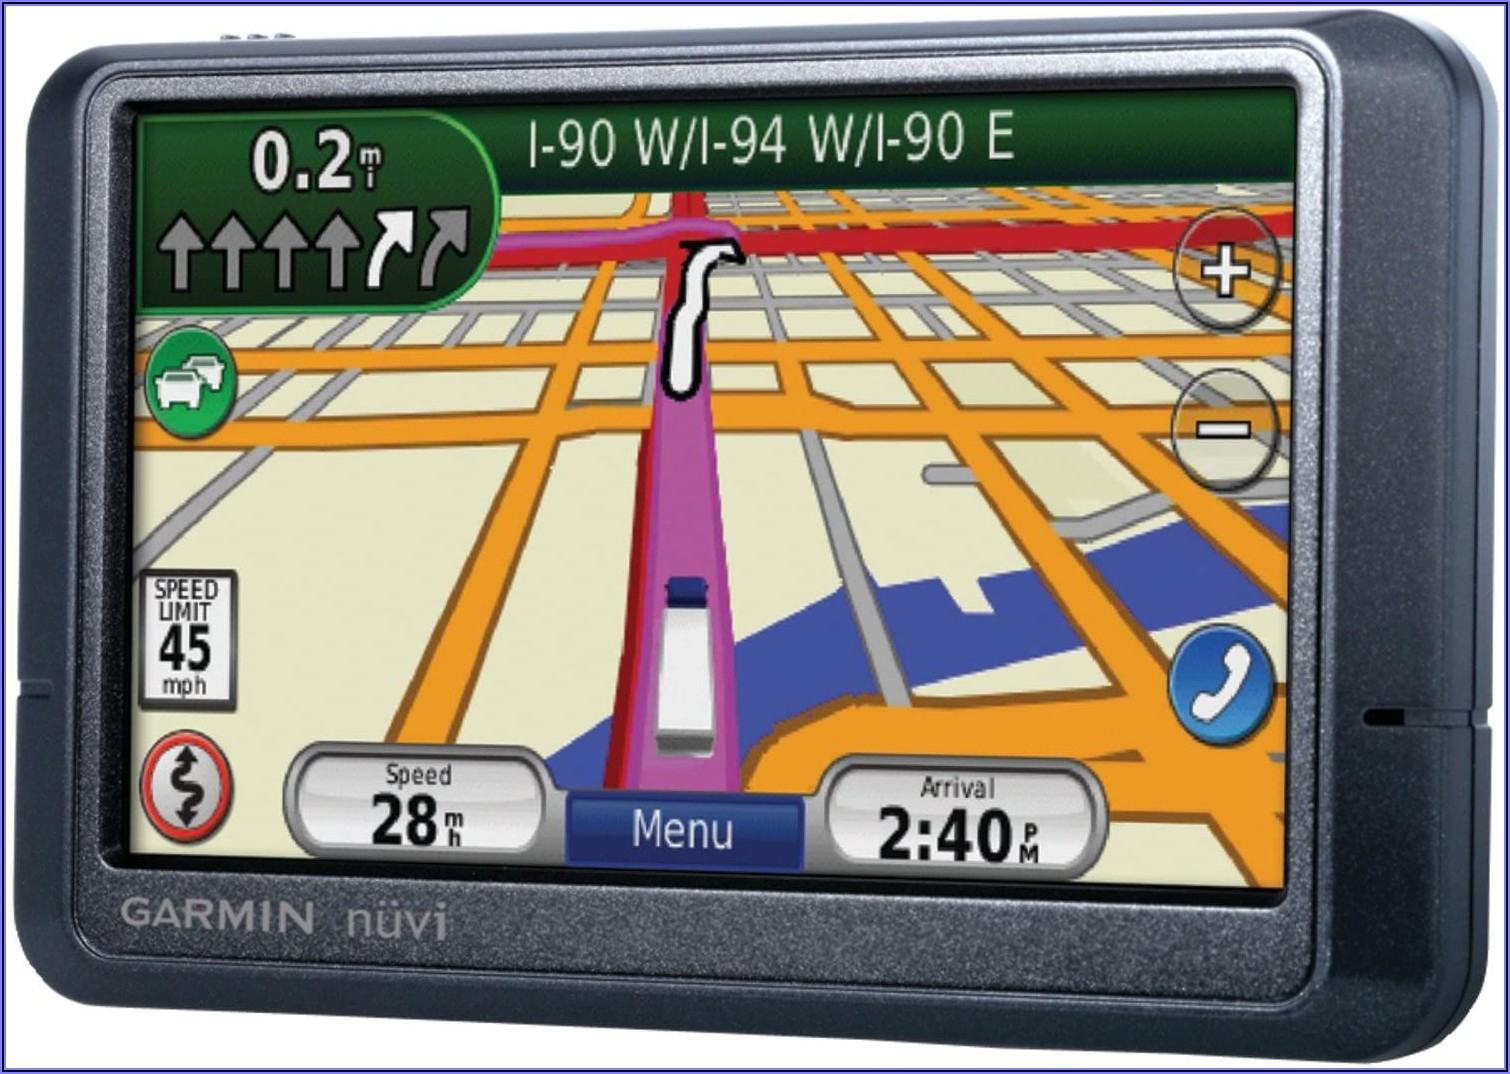 Garmin Drive 50 Gps Navigation System With Lifetime Maps And Traffic